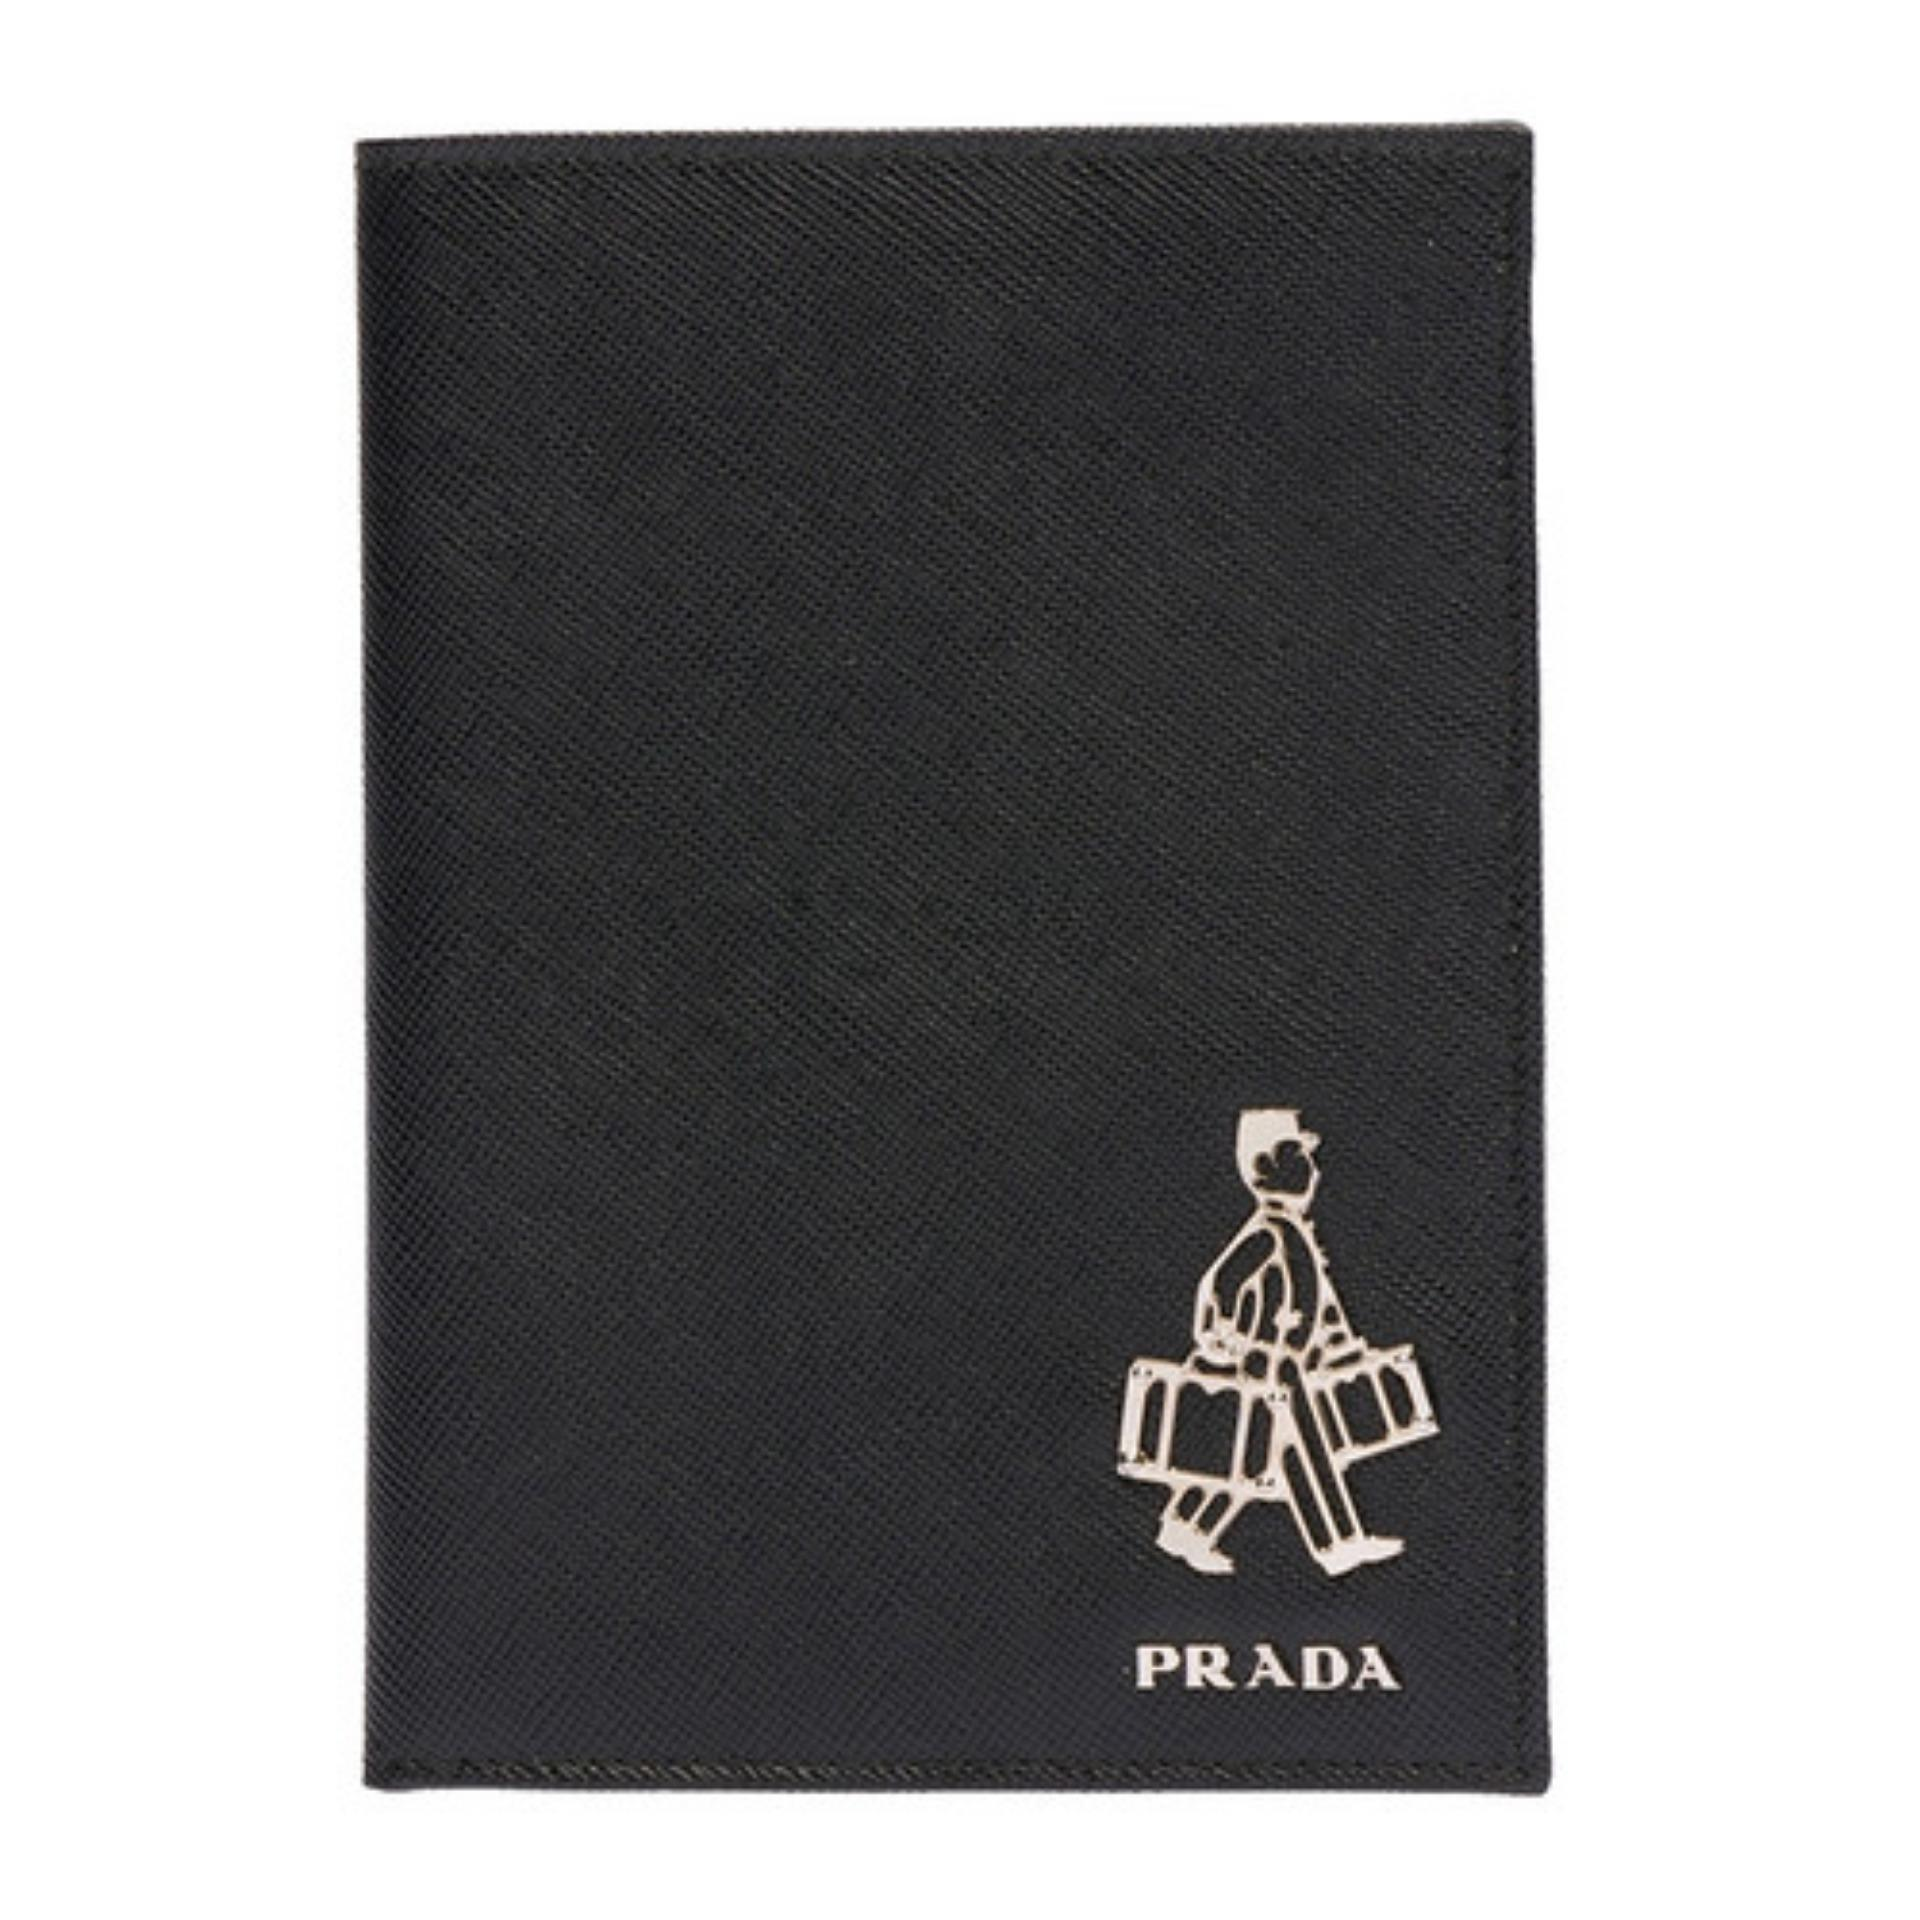 75b42cd6313179 Prada Saffiano 'Porter' Card Holder (Nero) # 2MV4129Z2F0002